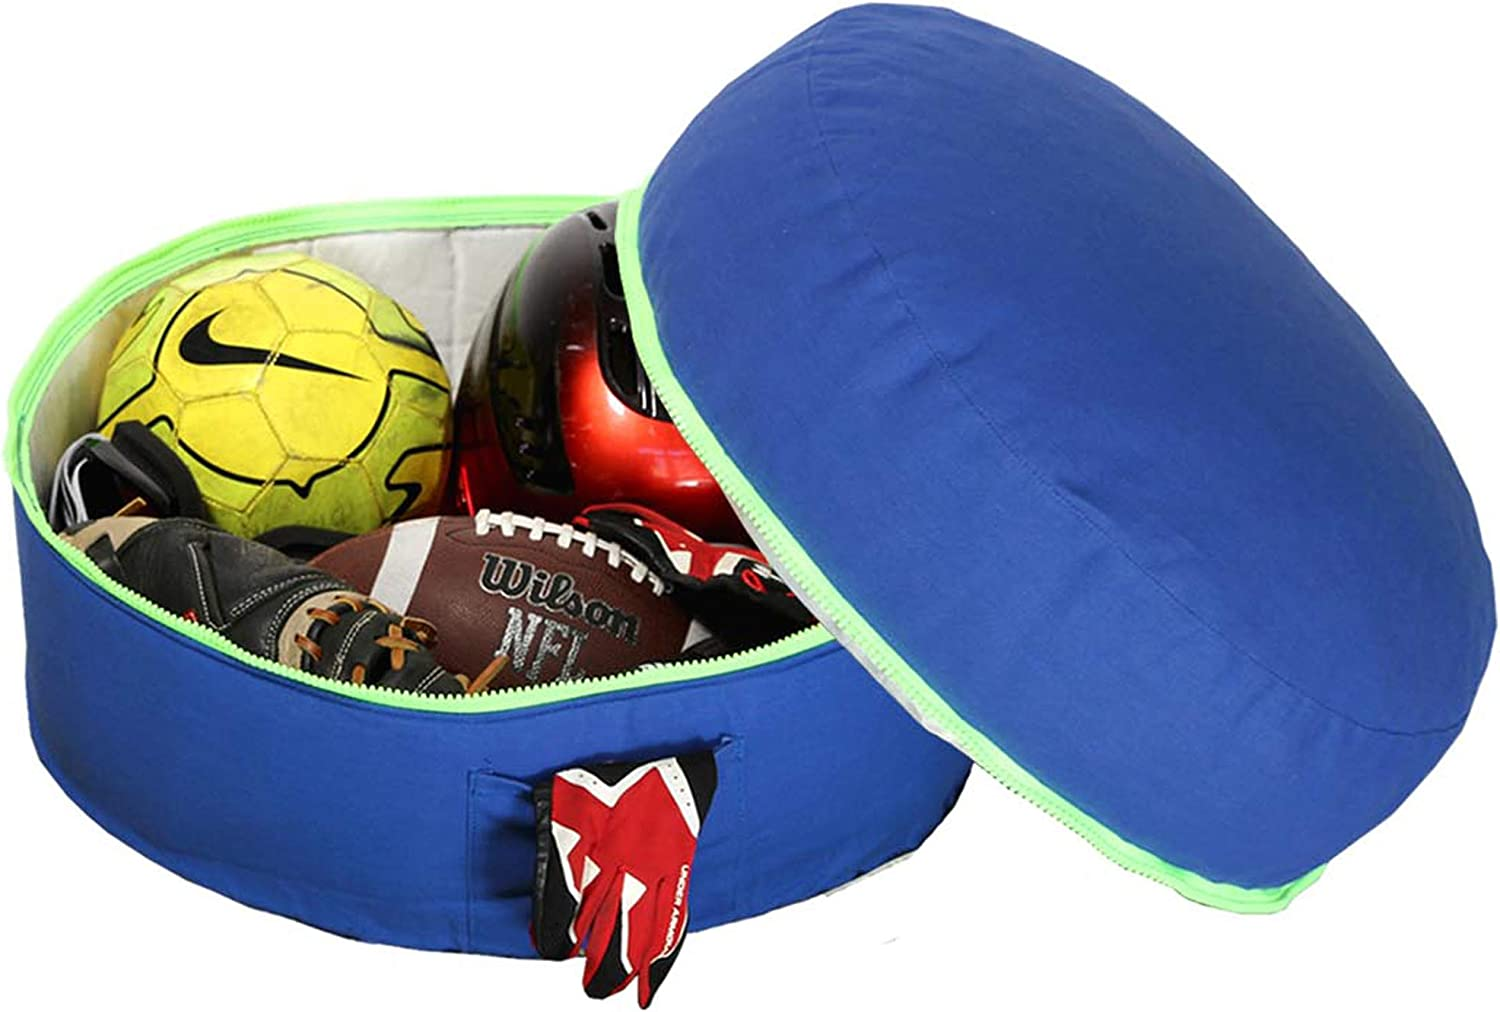 Mimish Patented Exposed Zipper & 2 Outer Pockets Storage Pouf, Surfer bluee with Neon Green